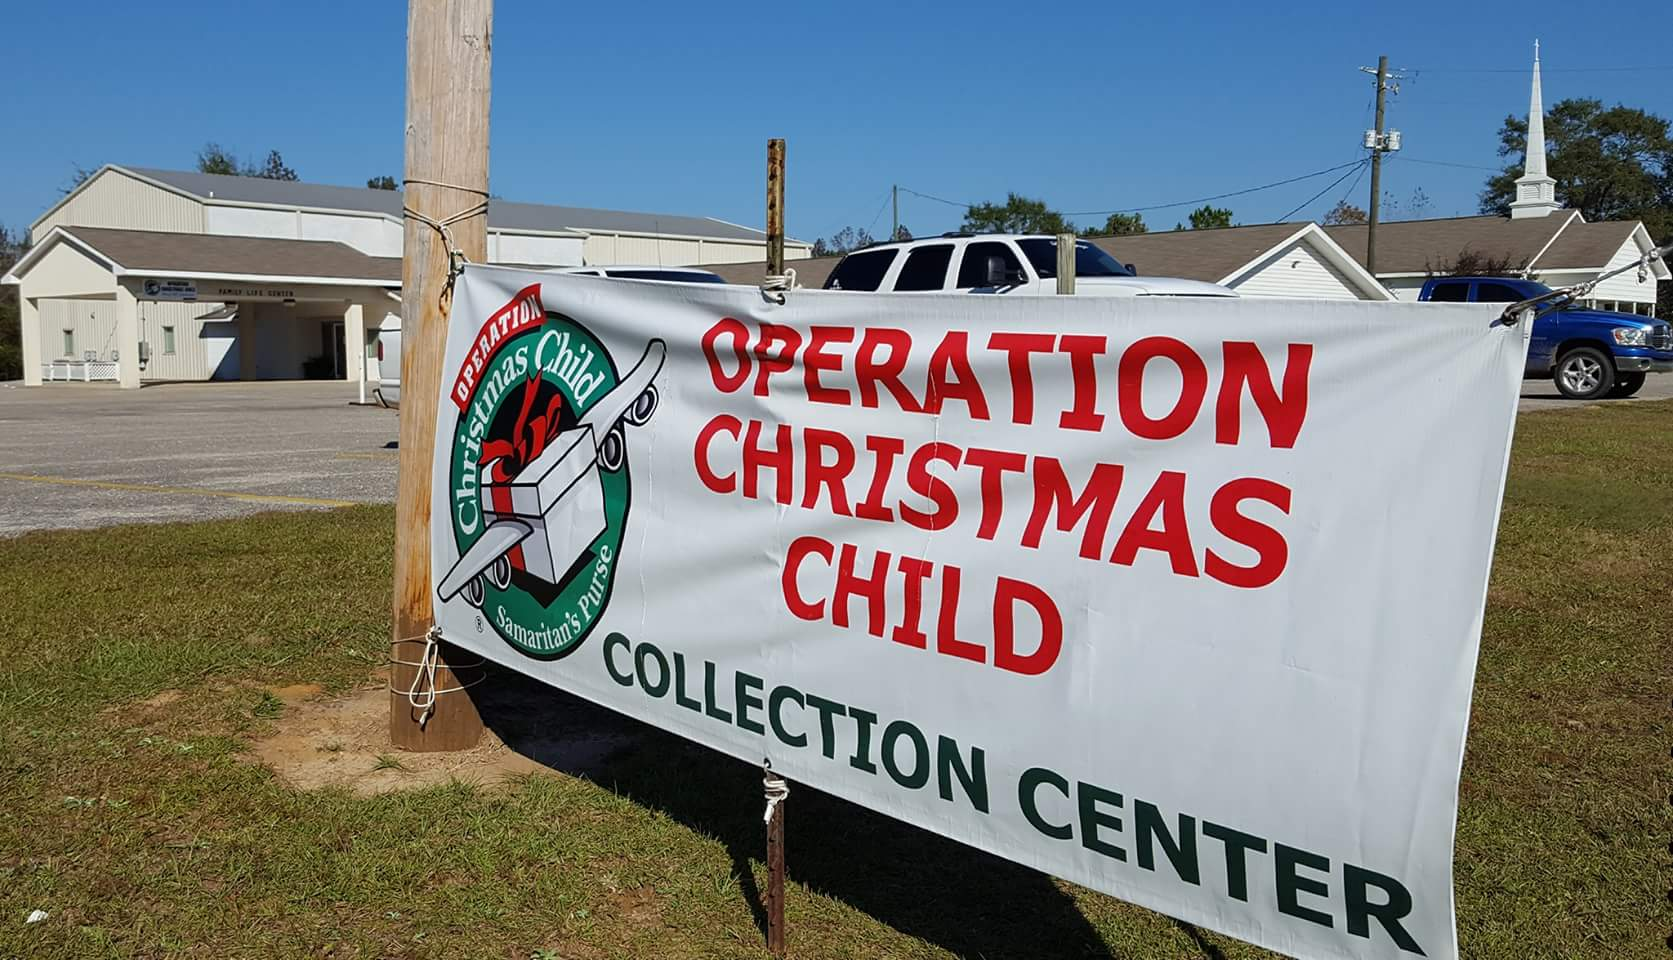 Greene church is now a collection site for Operation Christmas Child